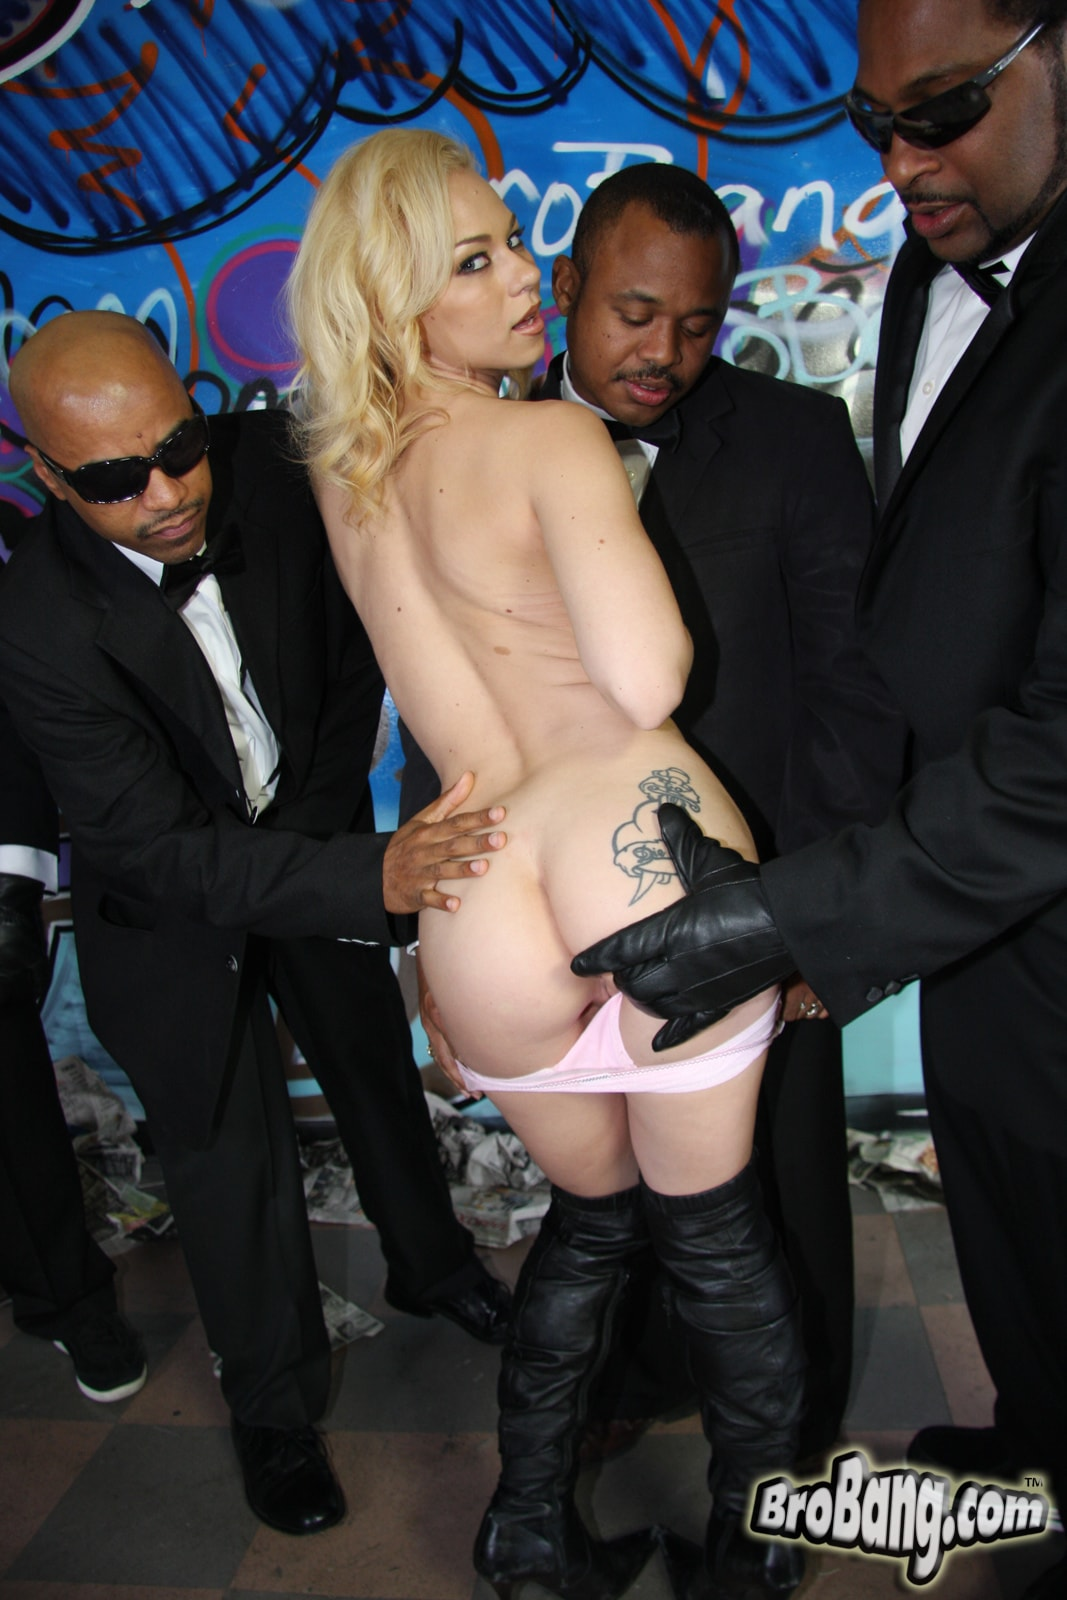 Dogfart 'Melanie Jayne - Interracial Blowbang' starring Melanie Jayne (photo 12)